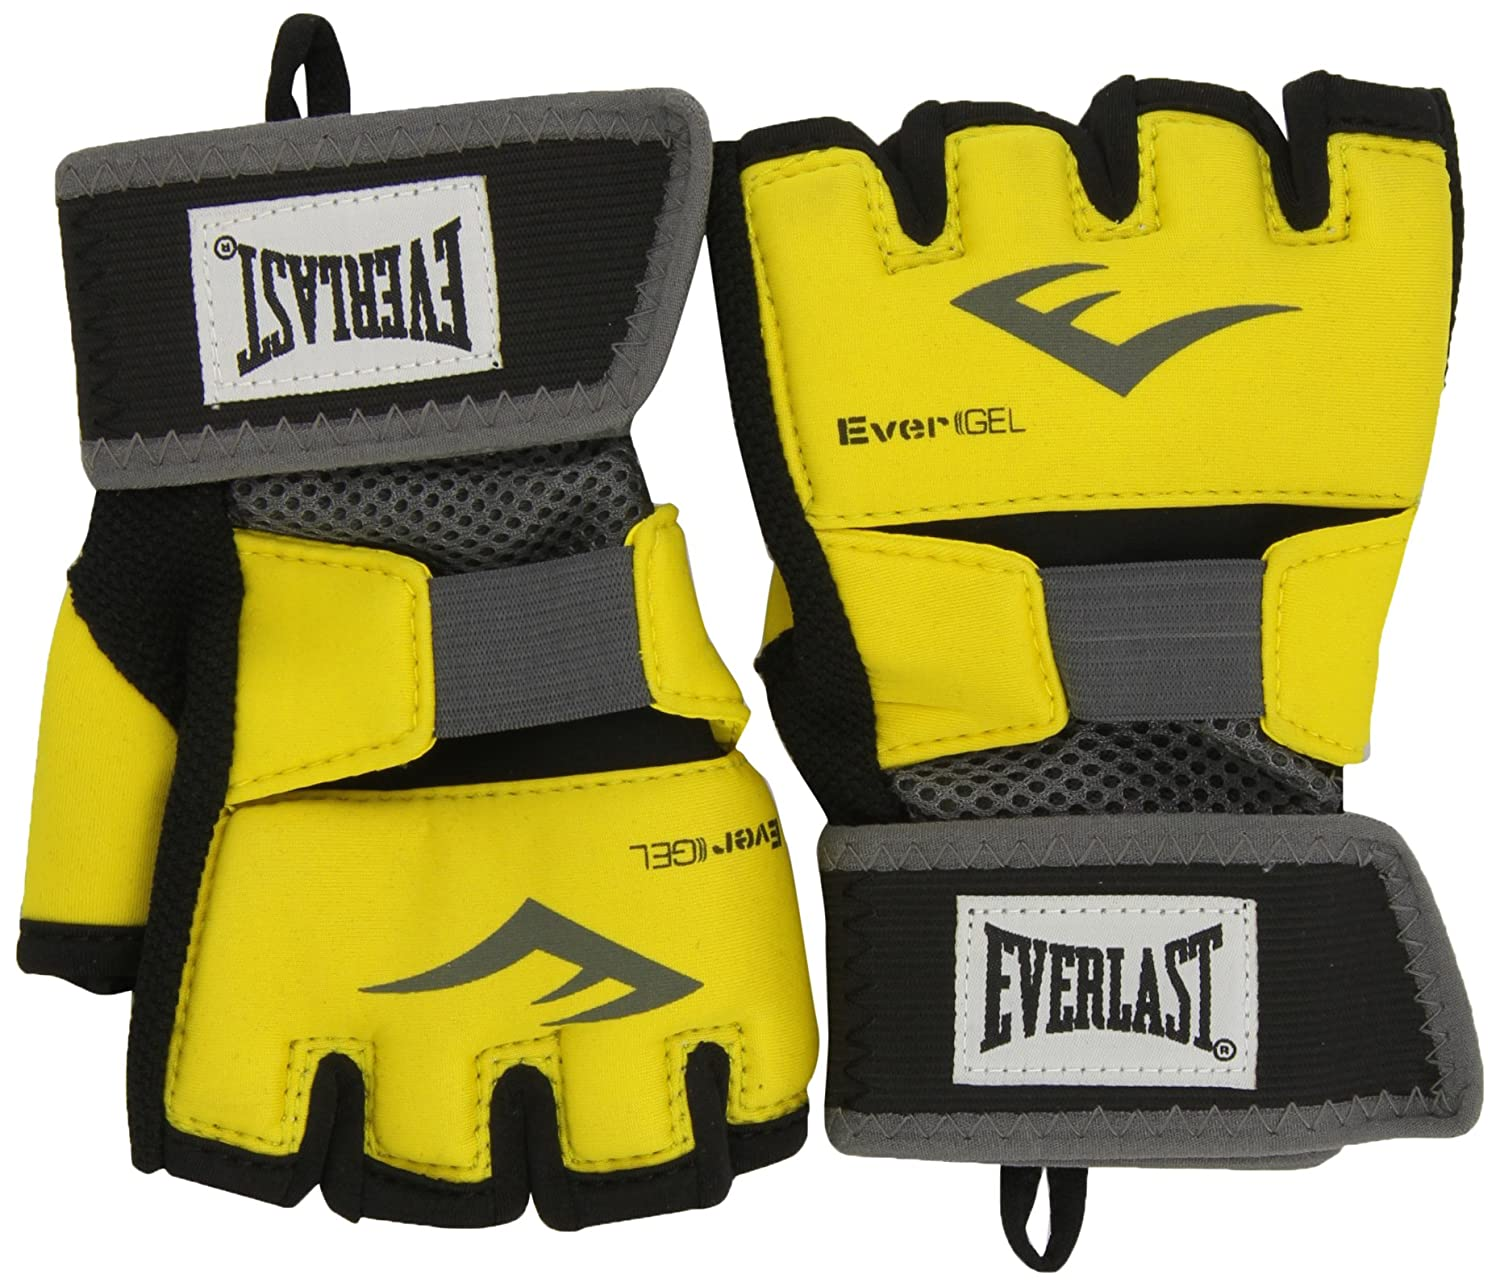 Everlast Ever-Gel Glove Wraps Sous-gants de boxe 5727411811